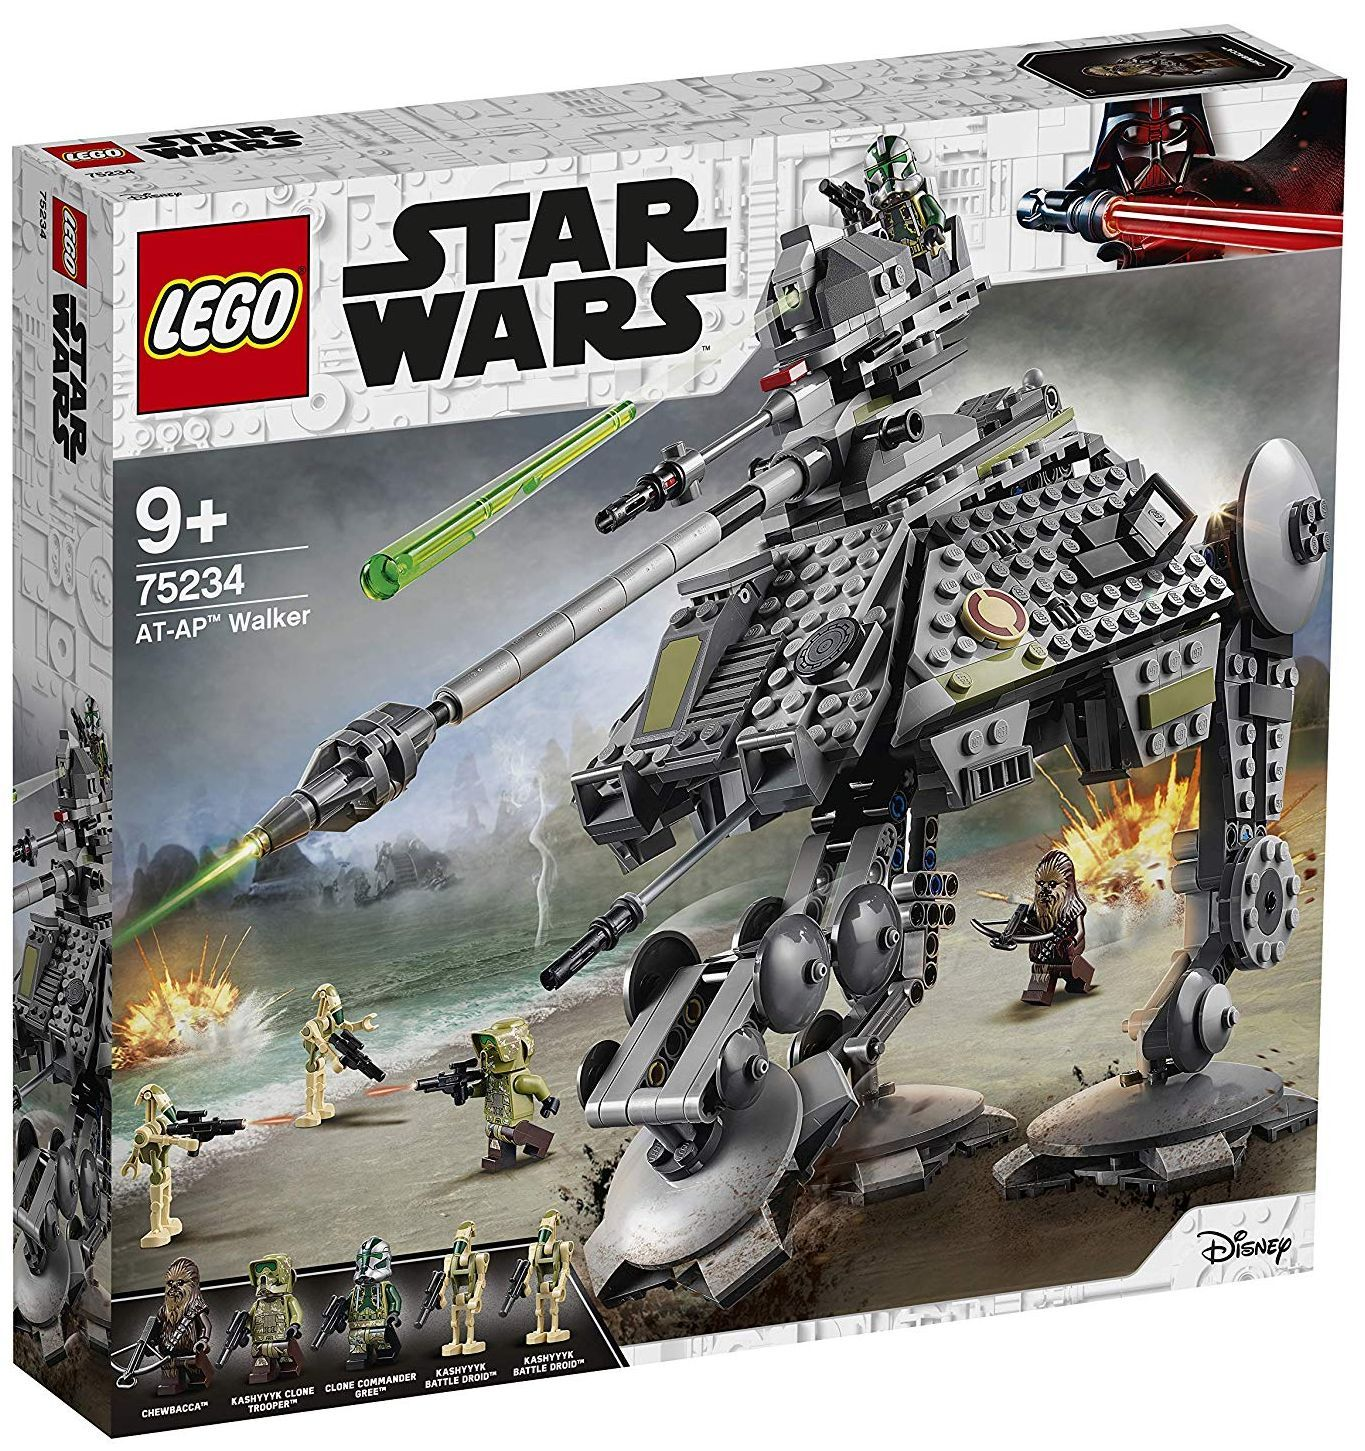 Конструктор Lego Star Wars - AT-AP Walker (75234) - 10